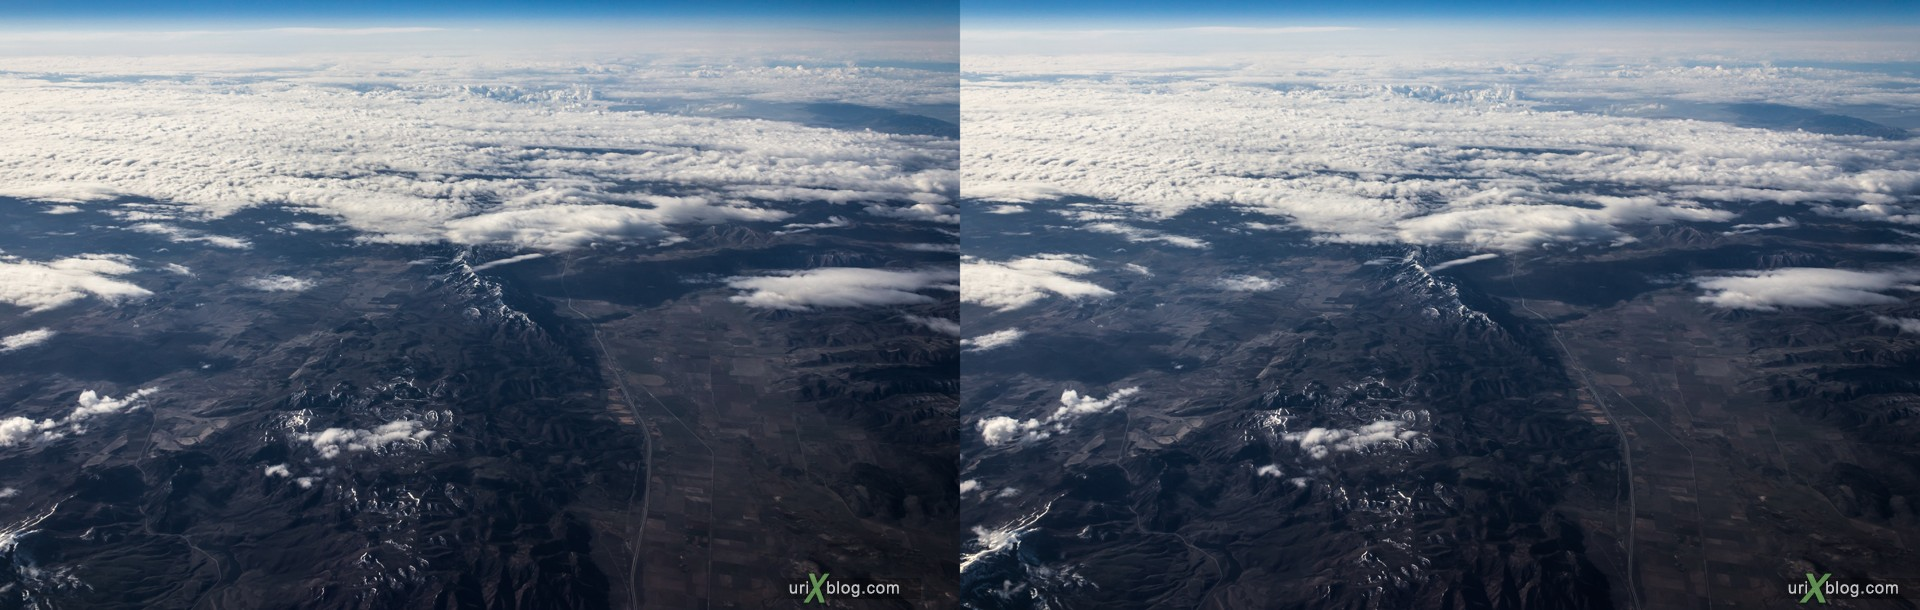 2013, Utah, Rocky mountains, USA, panorama, airplane, black and white, bw, snow, ice, clouds, horizon, 3D, stereo pair, cross-eyed, crossview, cross view stereo pair, stereoscopic